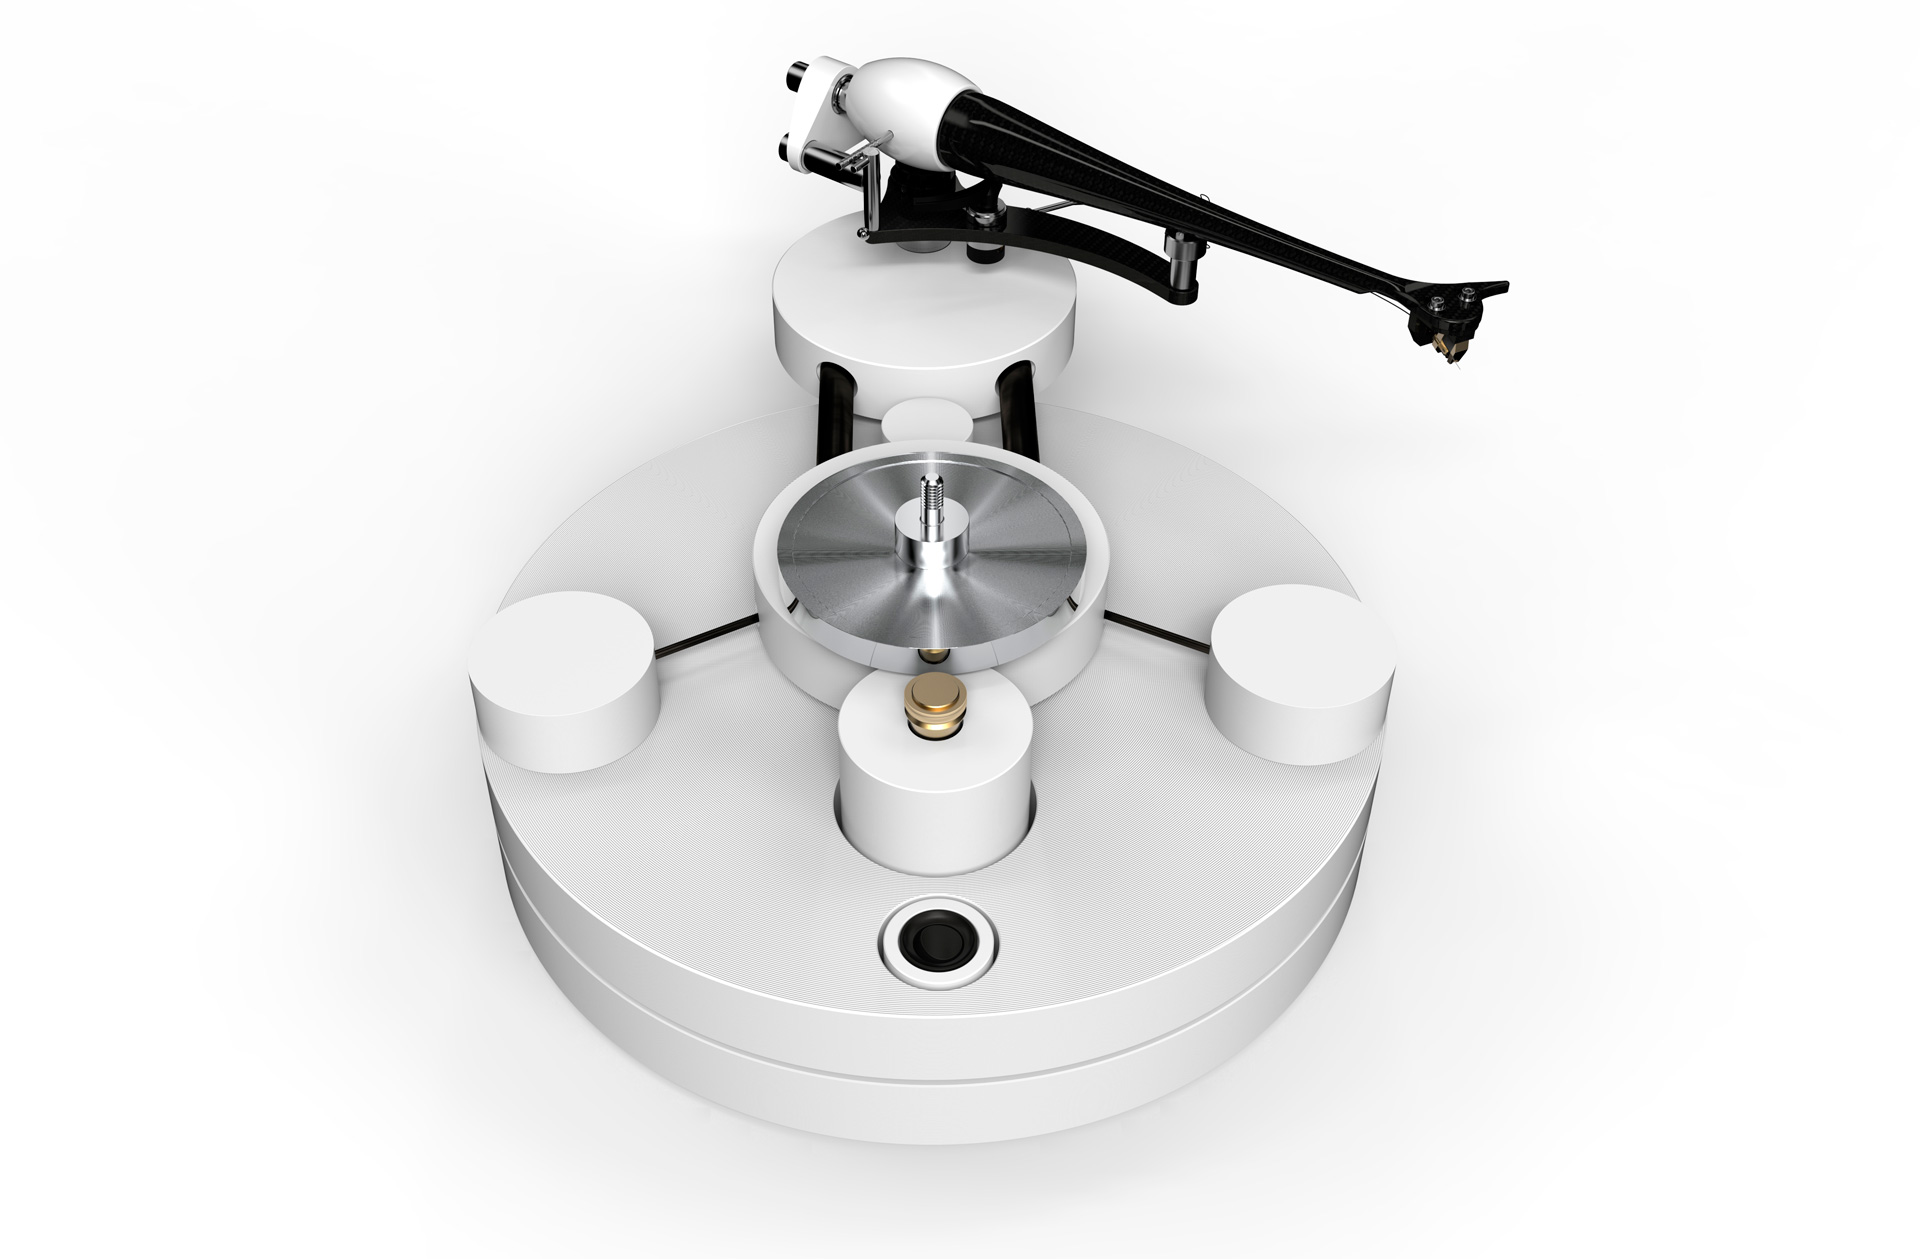 Fidelity Magazine - Circle 25 Turntable - White Edition - Review - Lifestyle - Bespoke - British - Analogue - Carbon Fibre